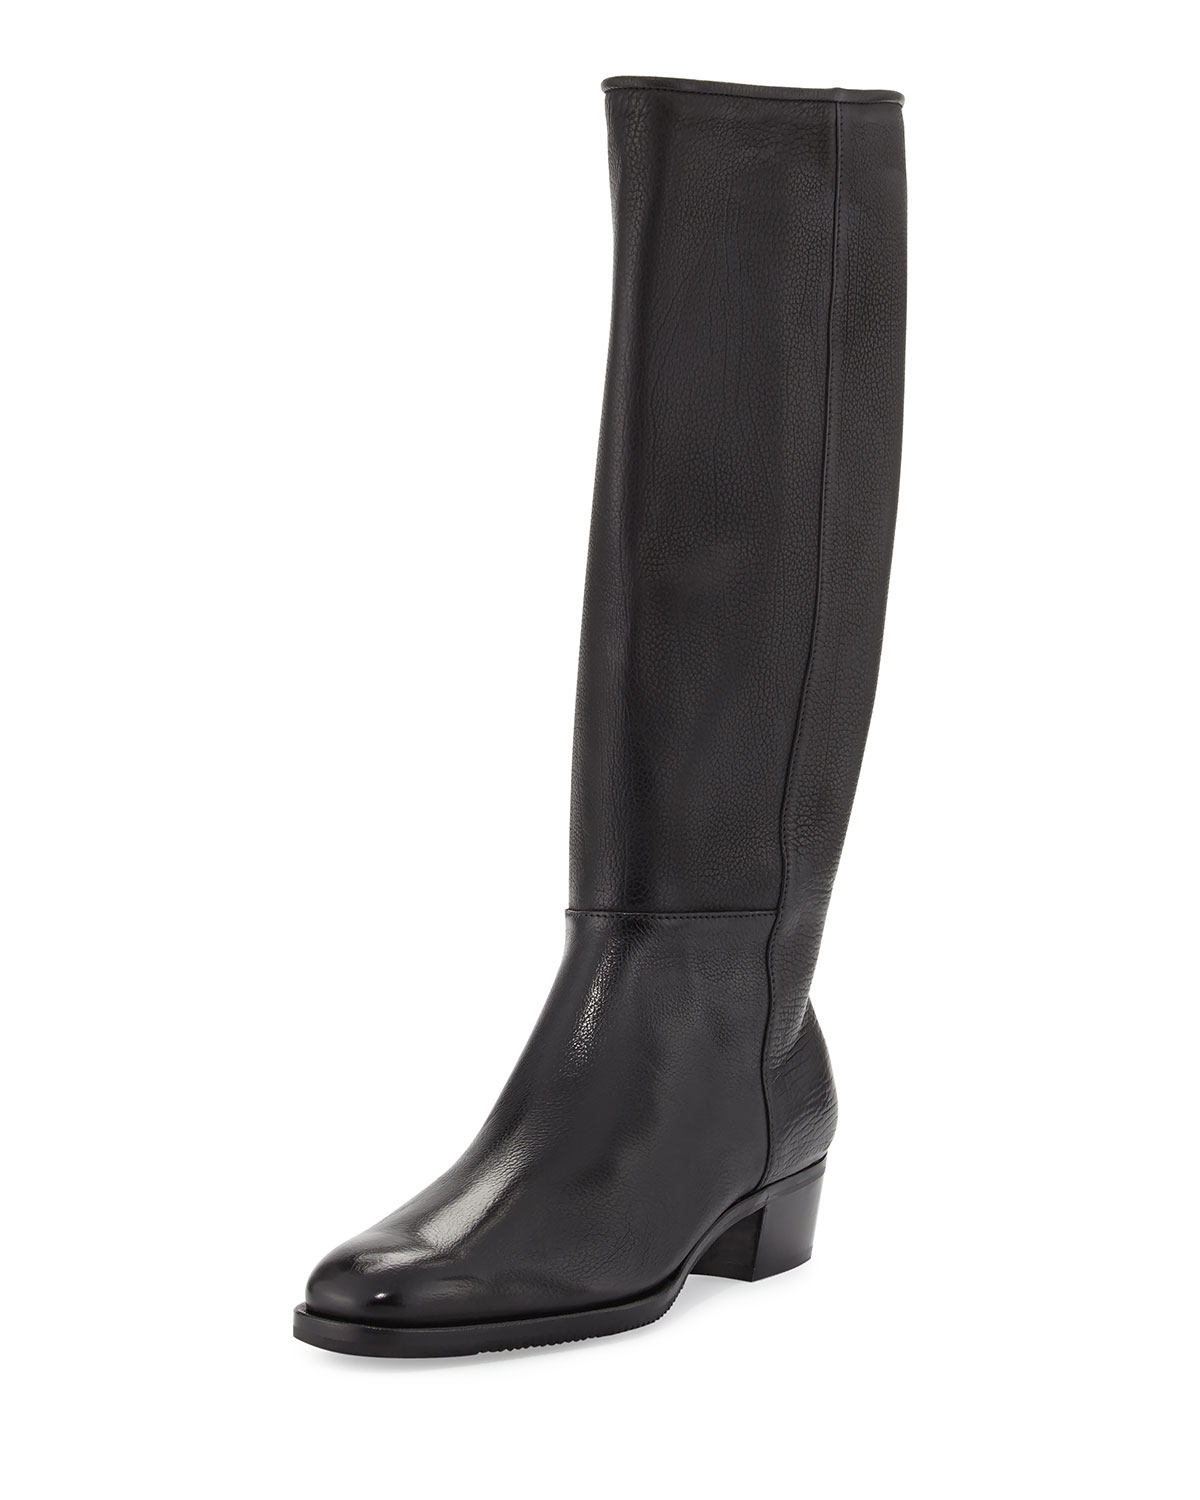 Tall Calf Leather Riding Boot, Black